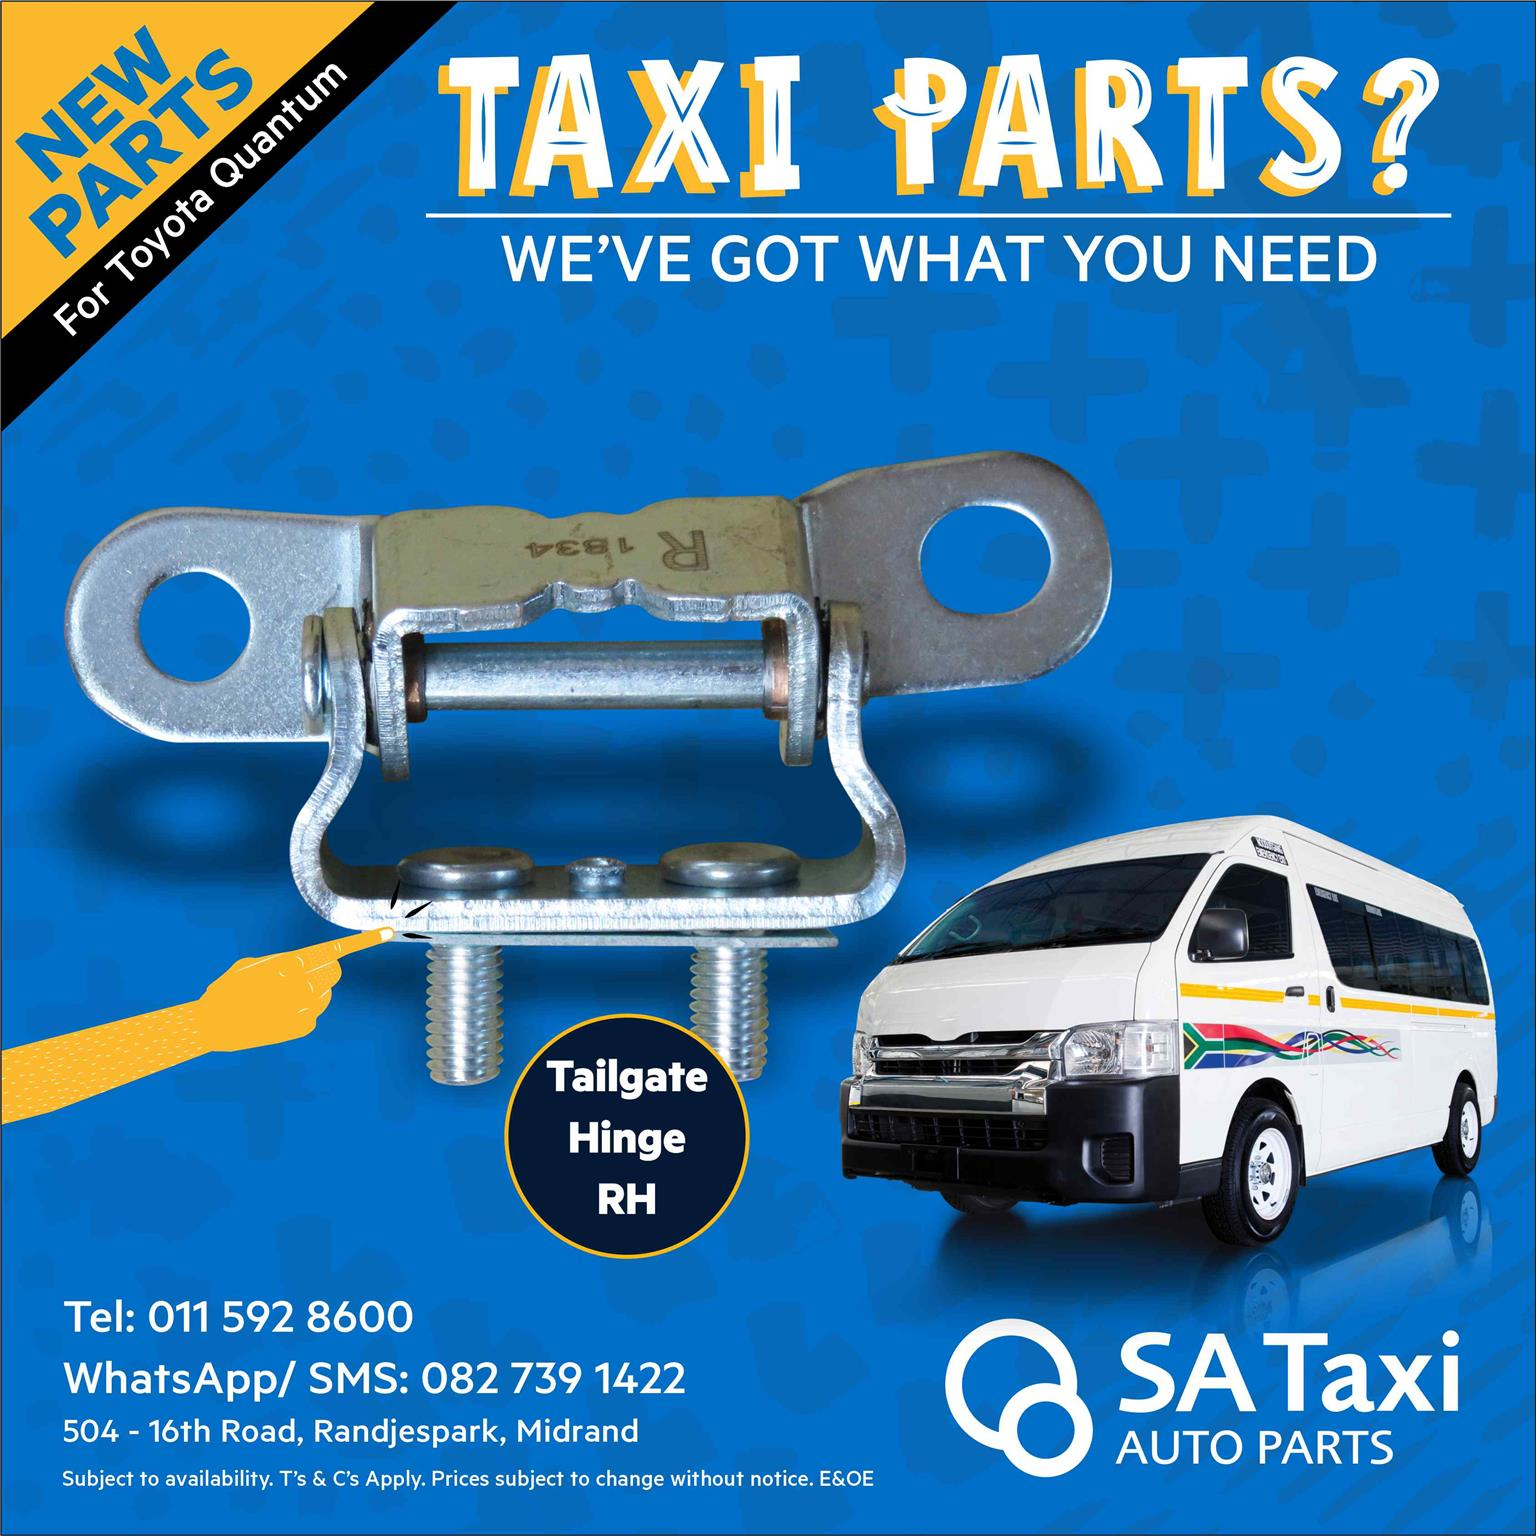 NEW Tailgate Hinge suitable for Toyota Quantum - SA Taxi Auto Parts quality spares